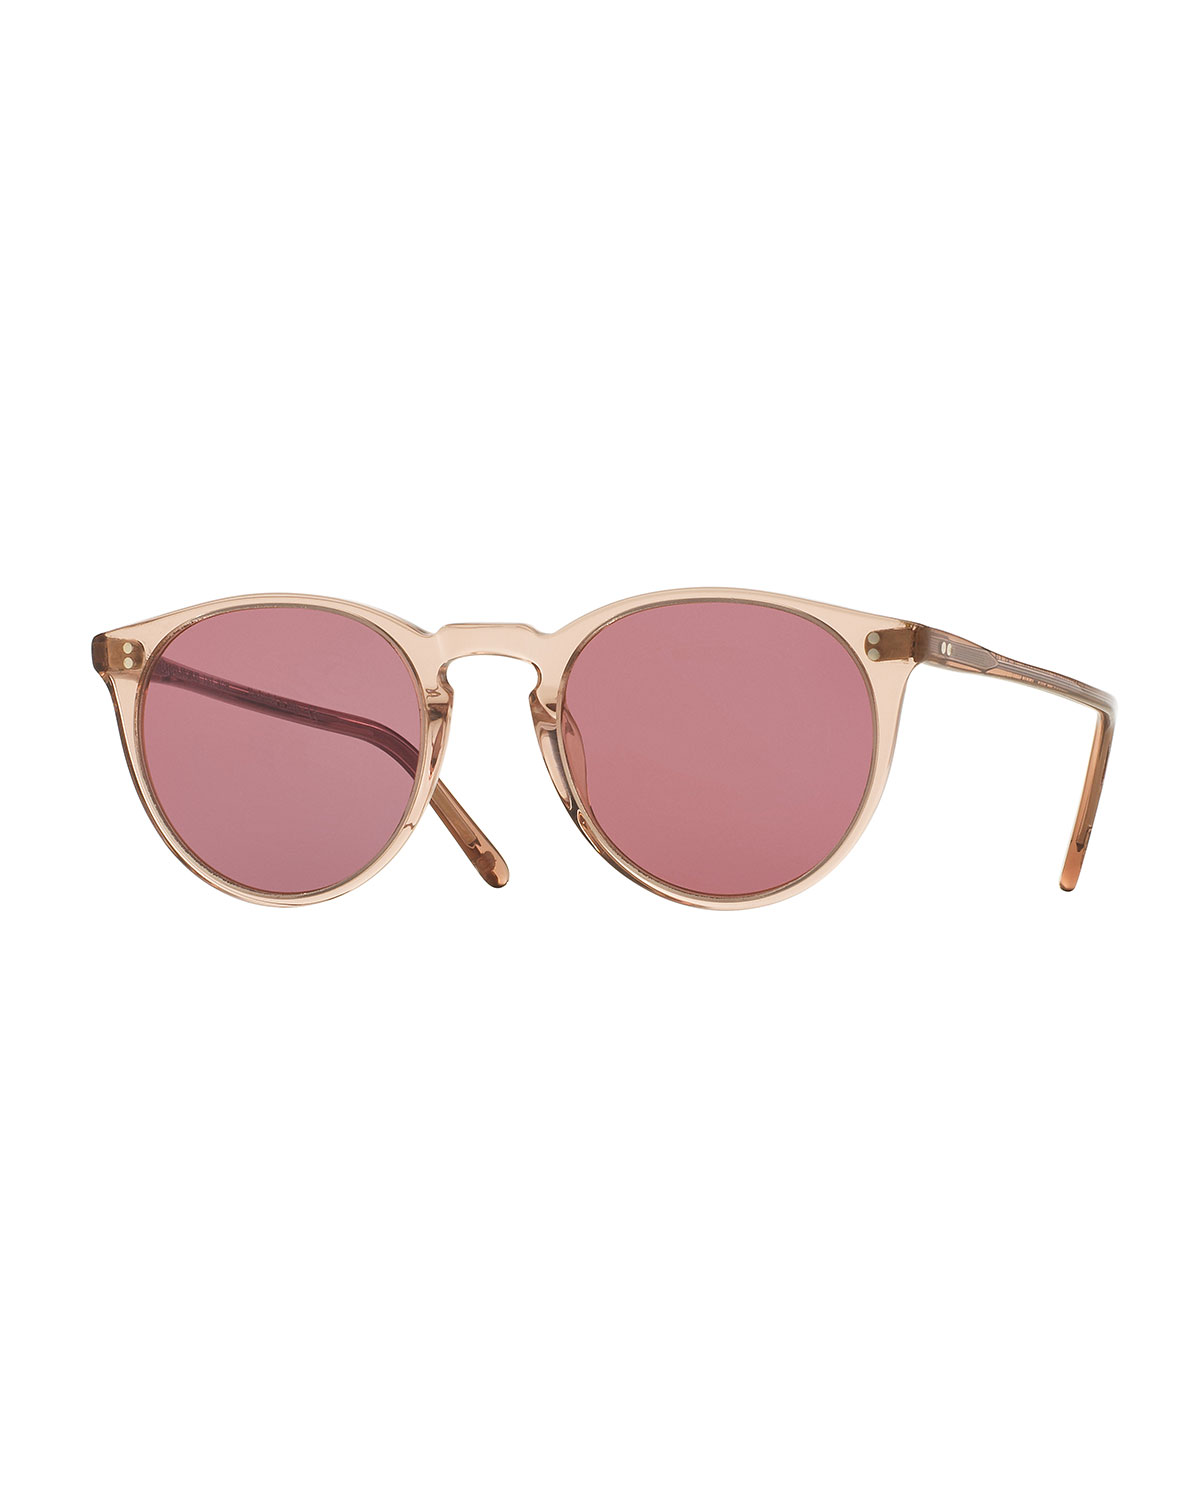 2202e037318 Oliver Peoples The RowO Malley NYC Peaked Round Photochromic Sunglasses